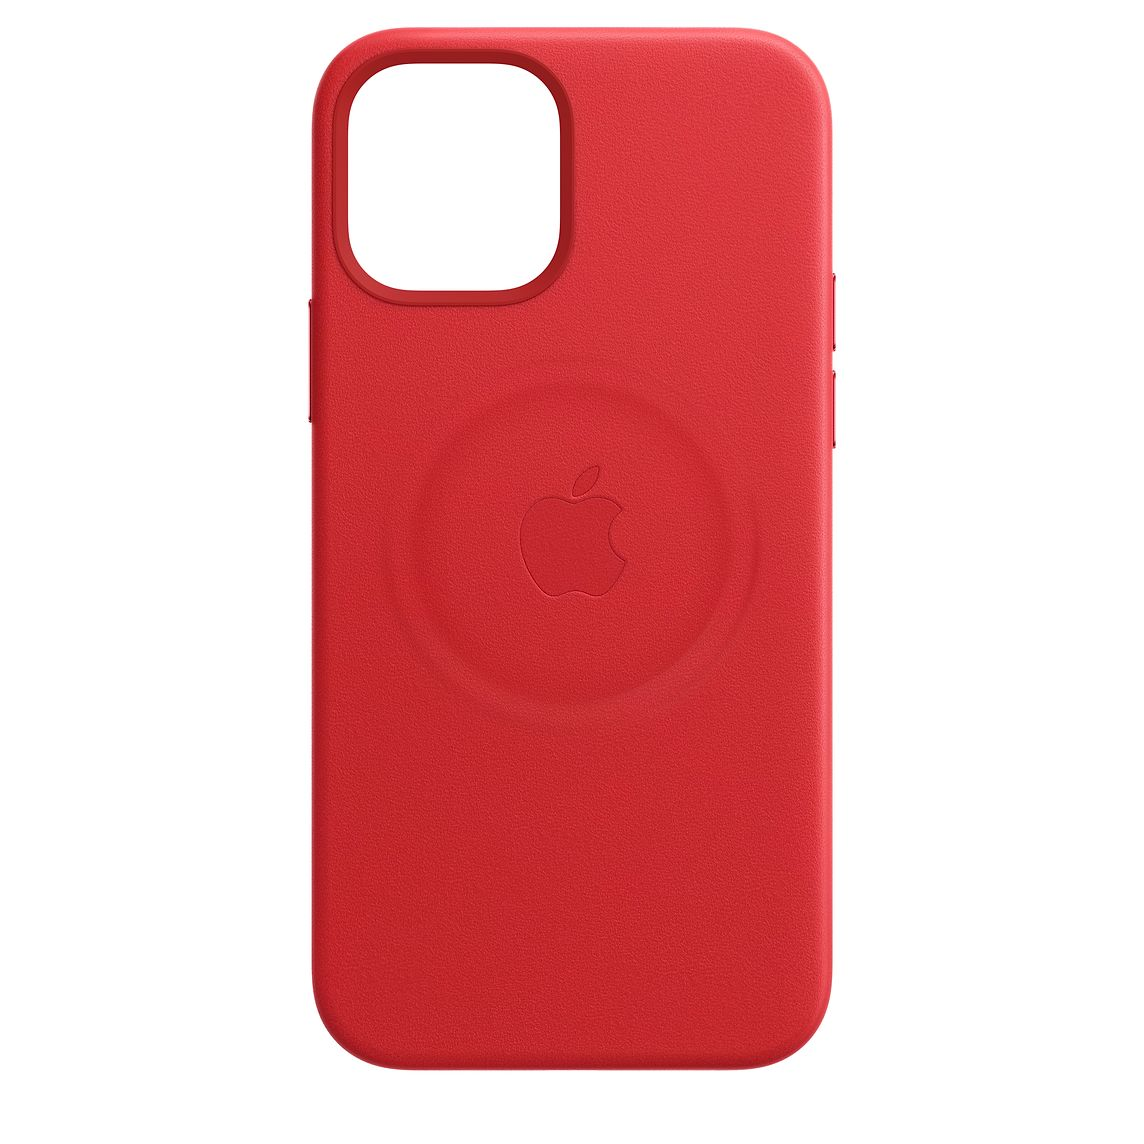 - iPhone 12 Pro Max Leather Case with MagSafe / Rojo 1